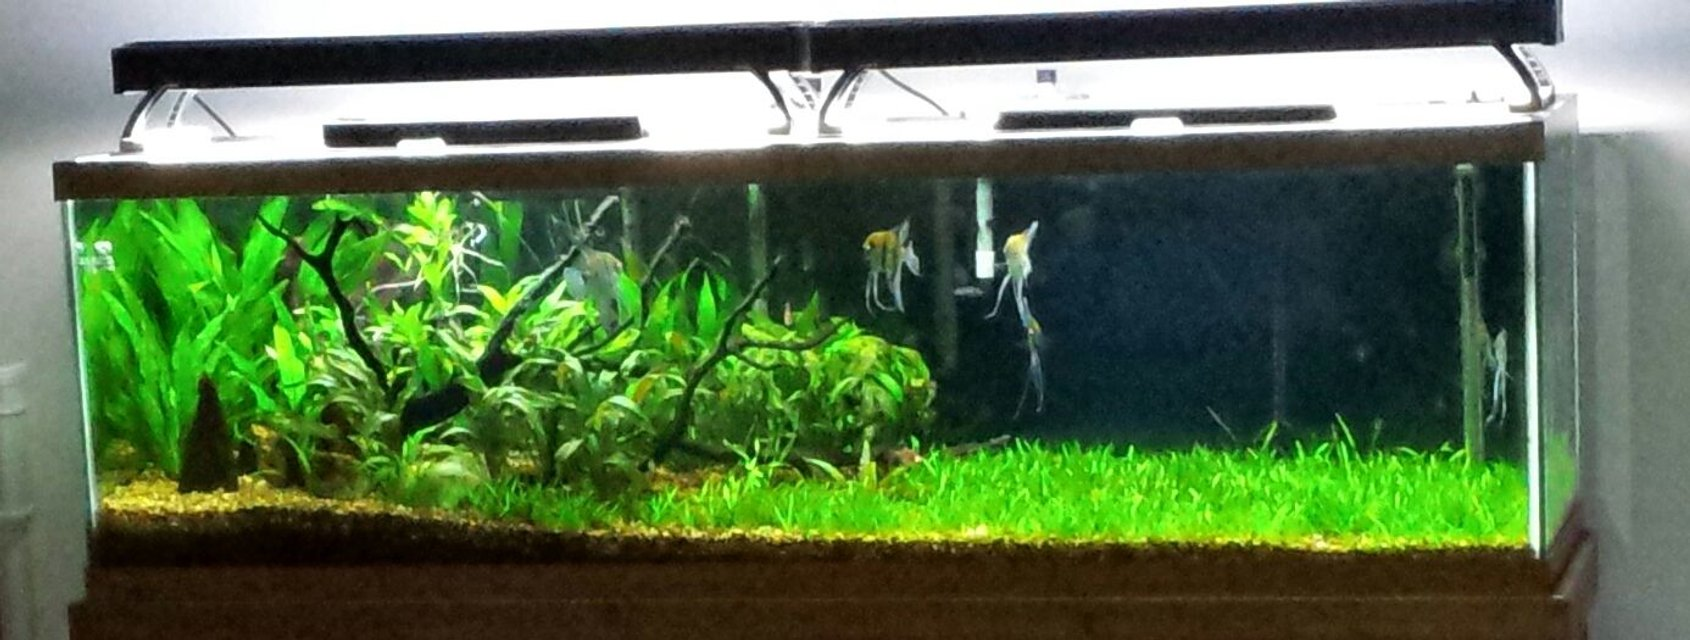 Rated #6: 125 Gallons Planted Tank - Rivers Edge.